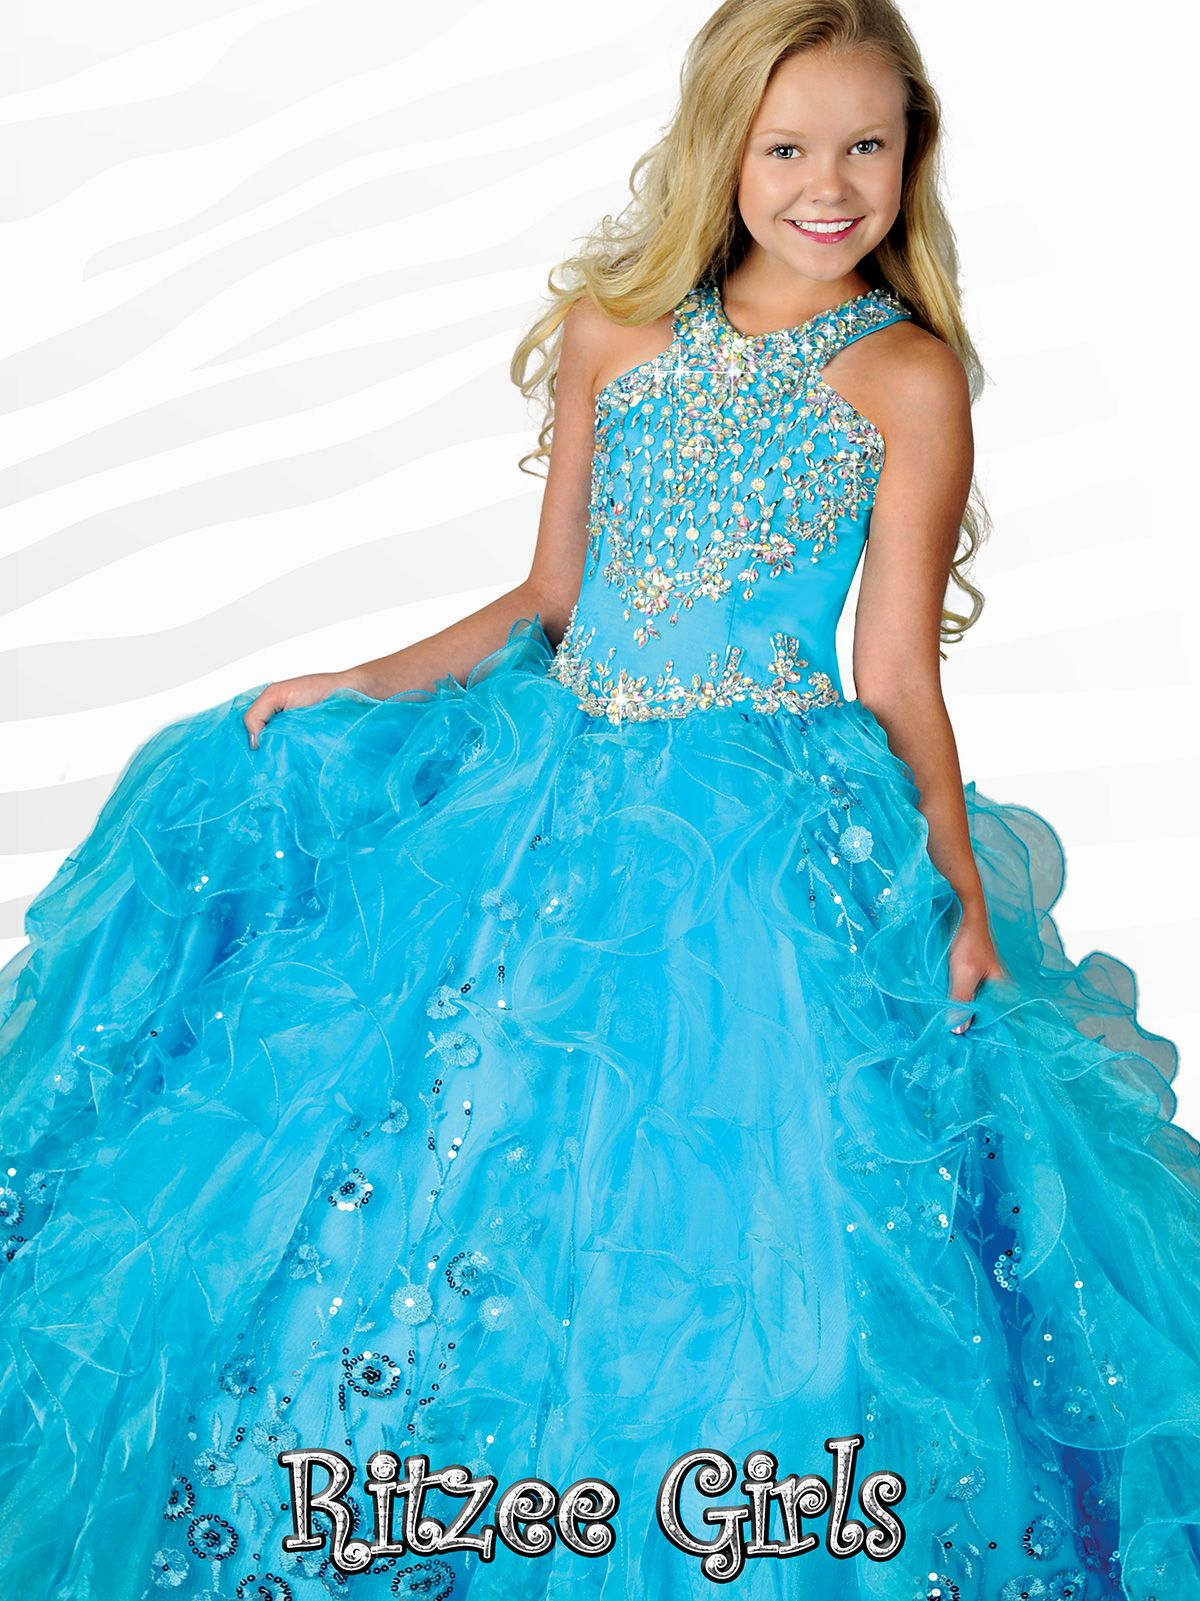 Charming Prom Girl Ball Gowns Photos - Wedding and flowers ...